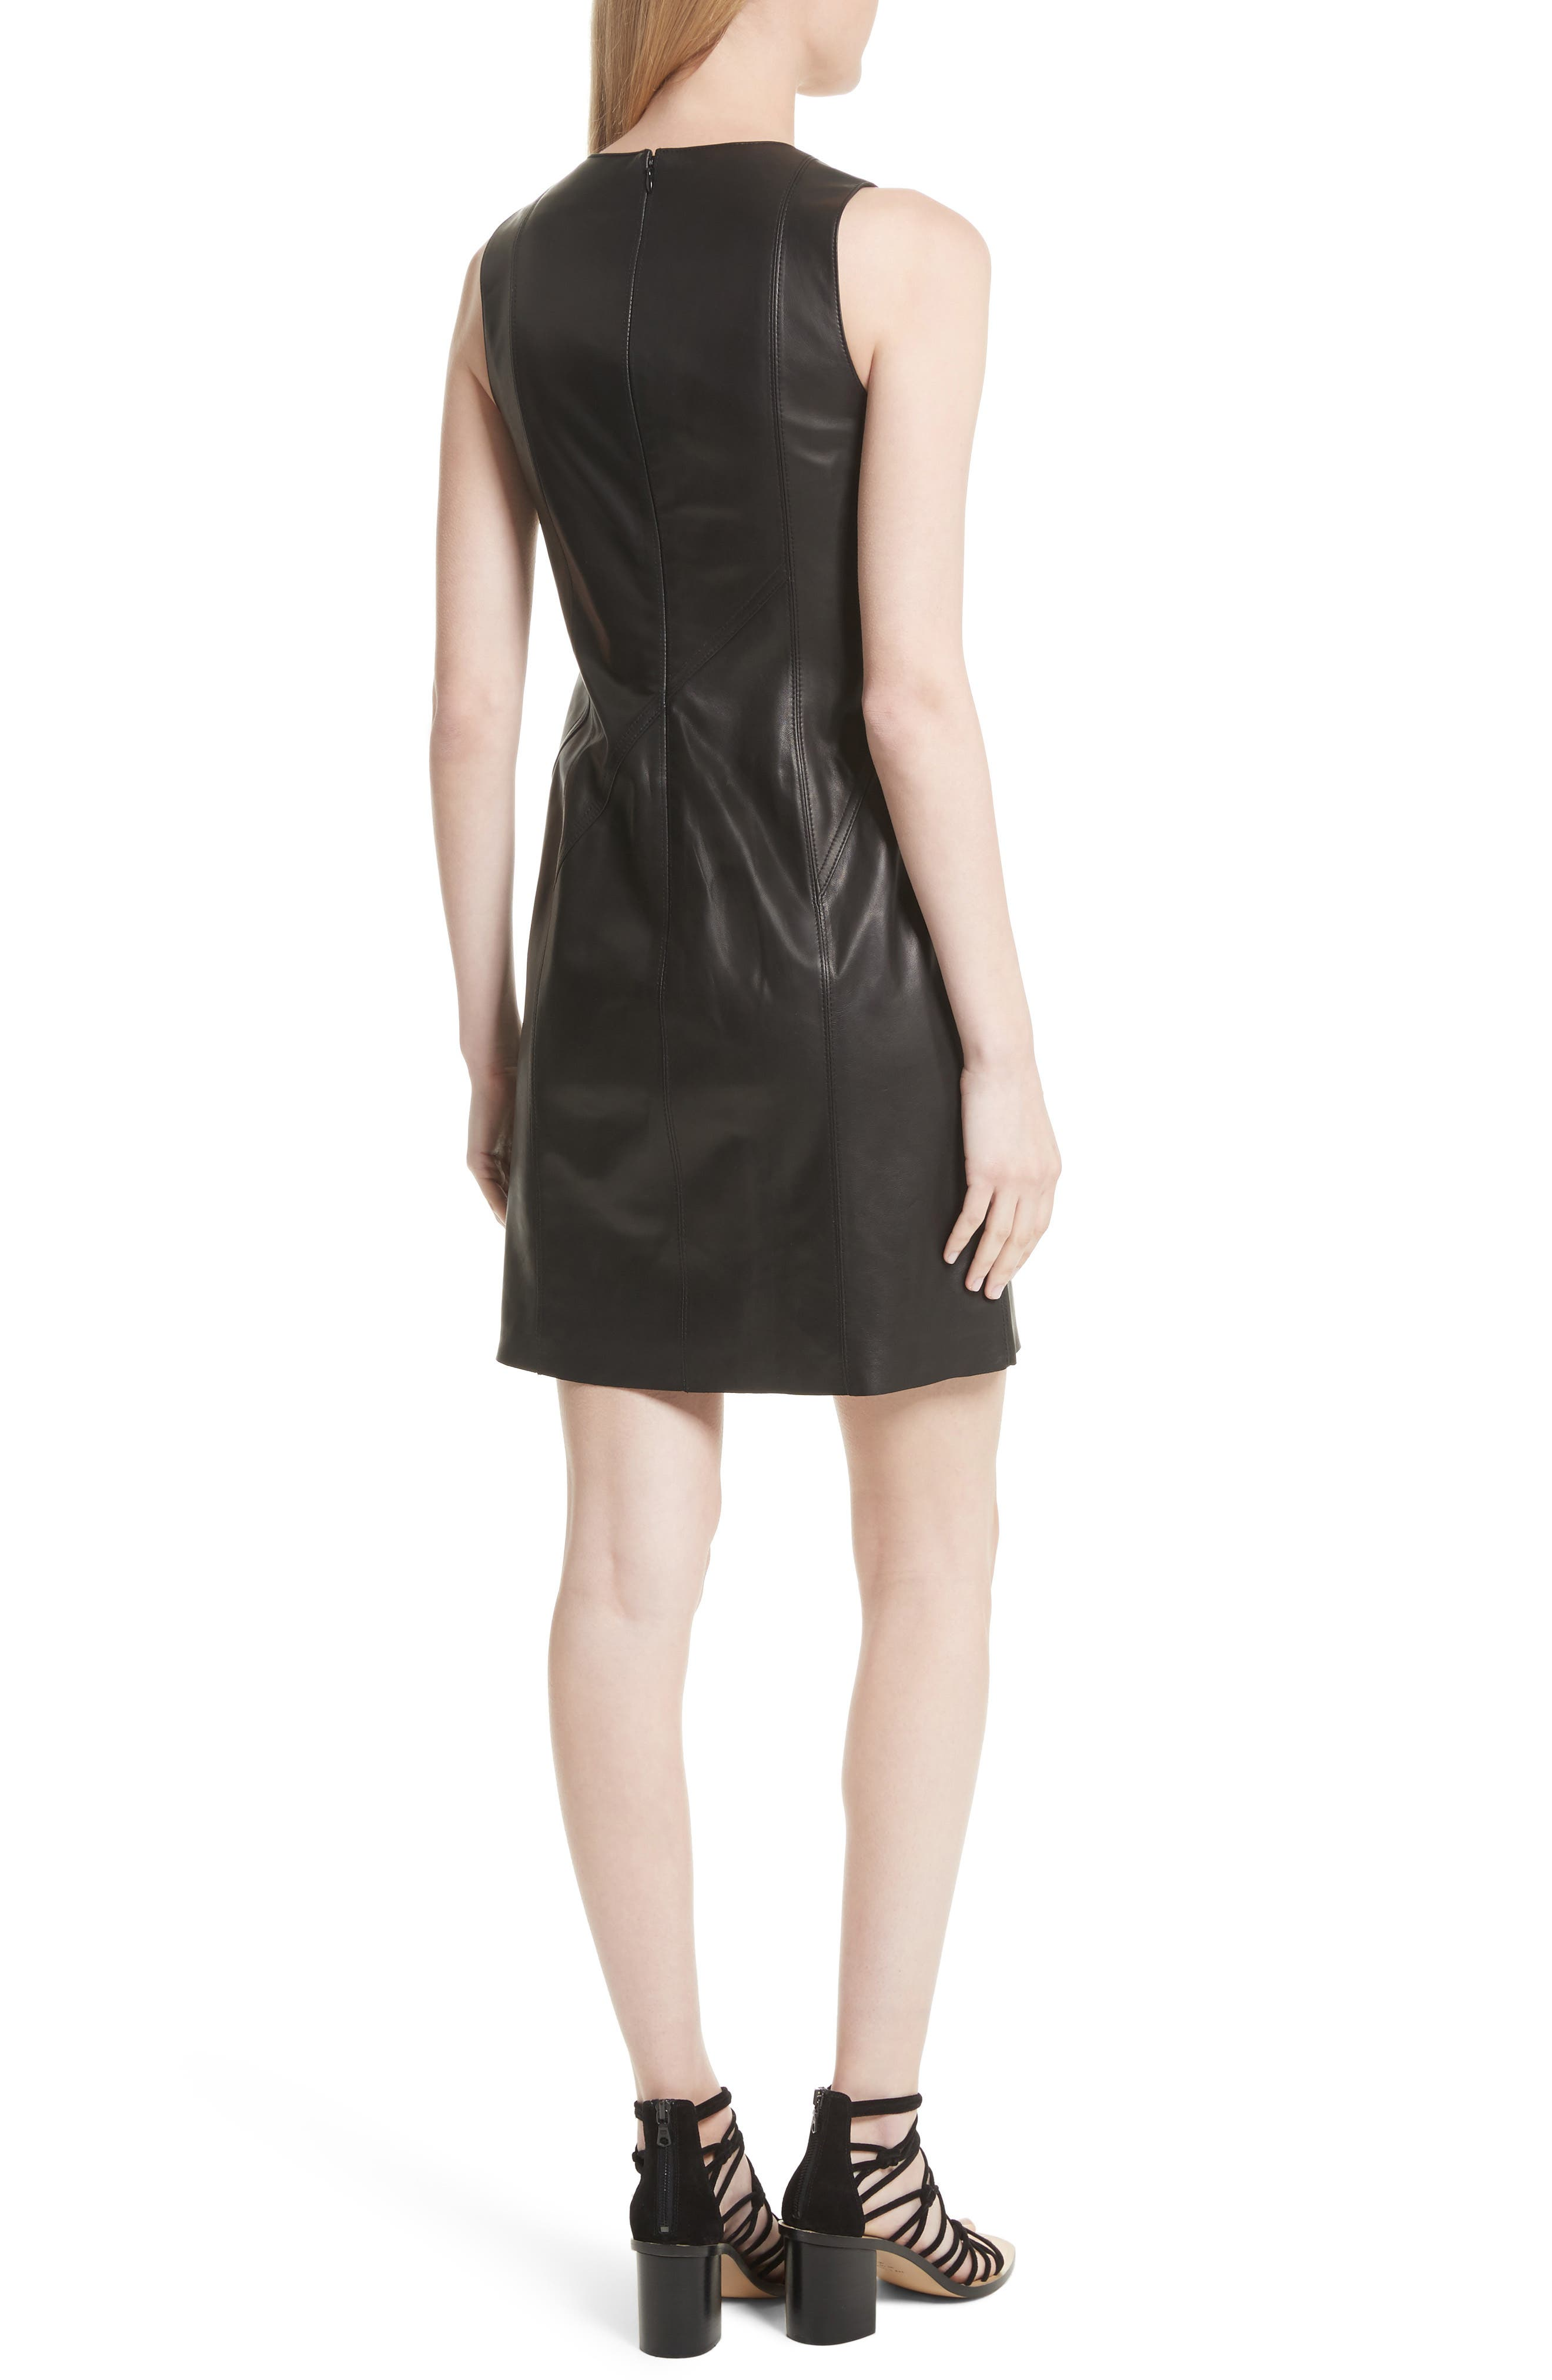 Loxley Leather Dress,                             Alternate thumbnail 2, color,                             Black